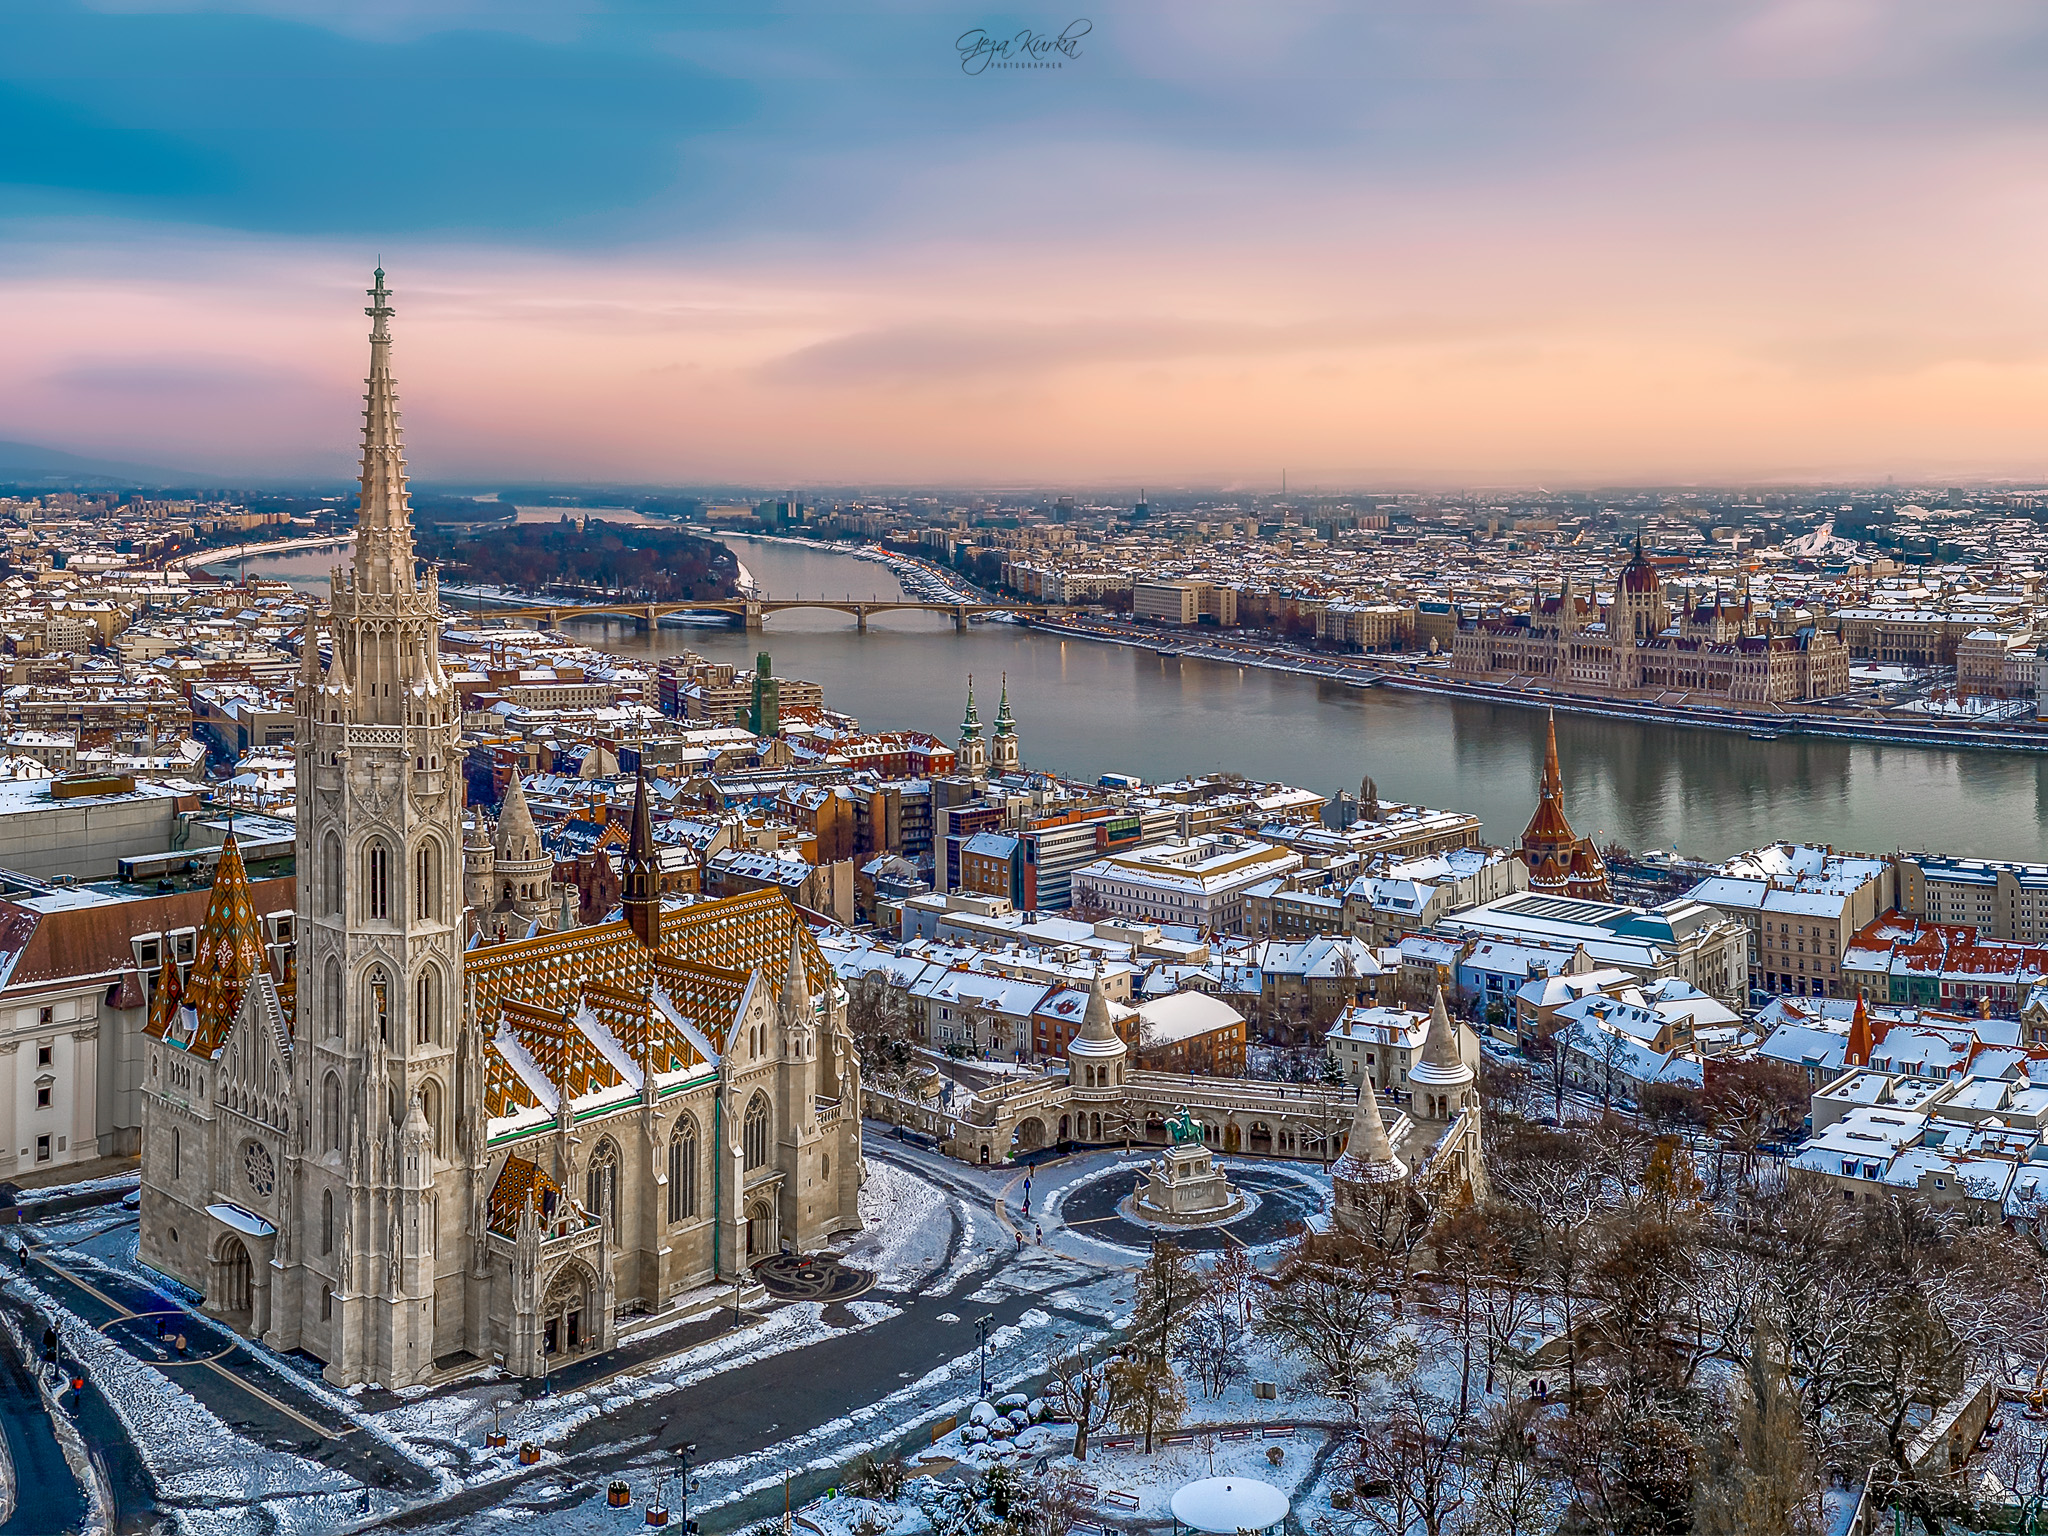 Aerial photo about a famous part of Budapest., Hungary